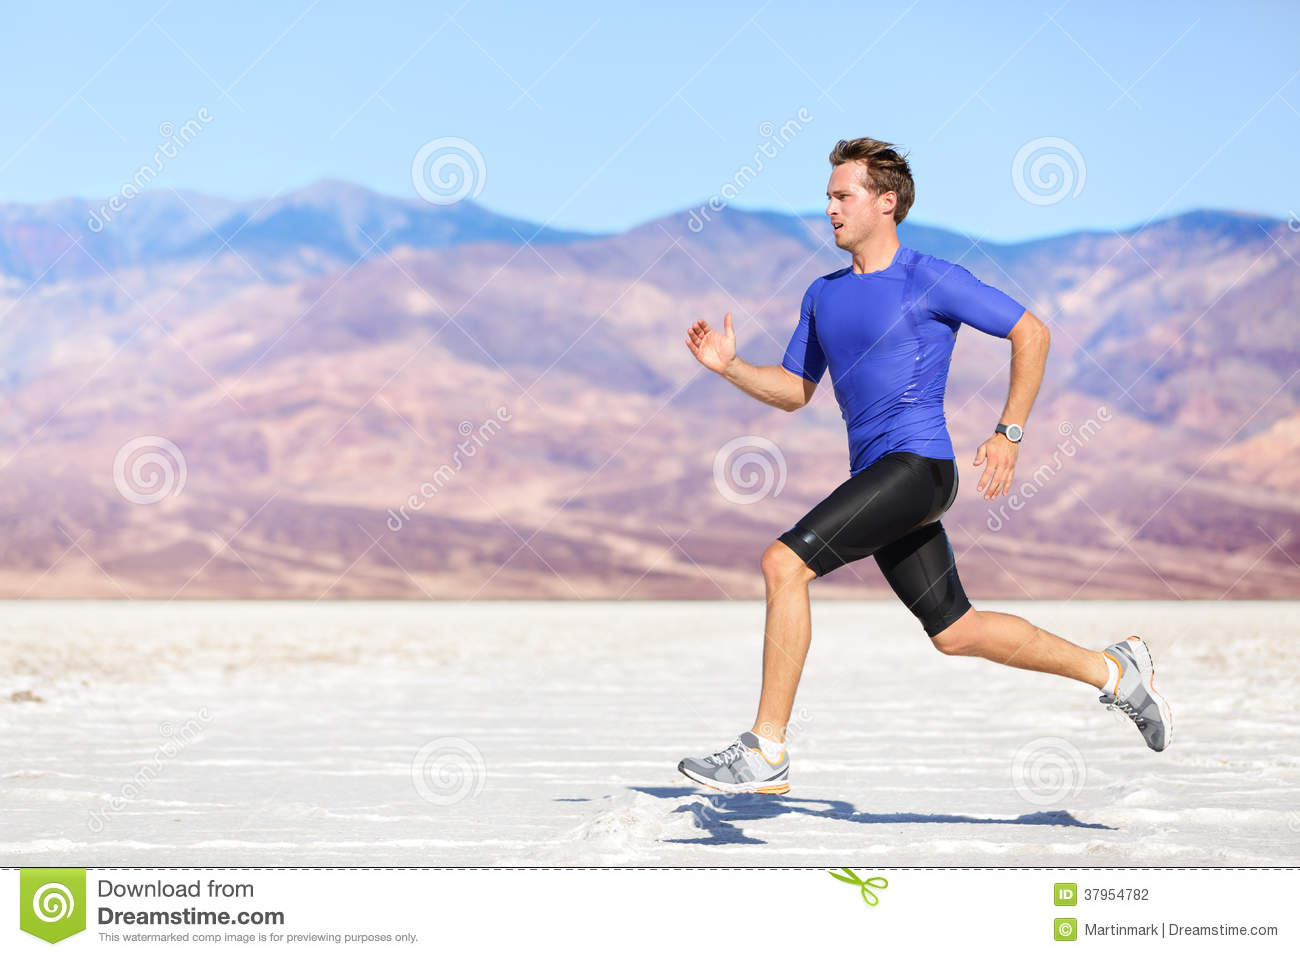 Man Running | www.pixshark.com - Images Galleries With A Bite!